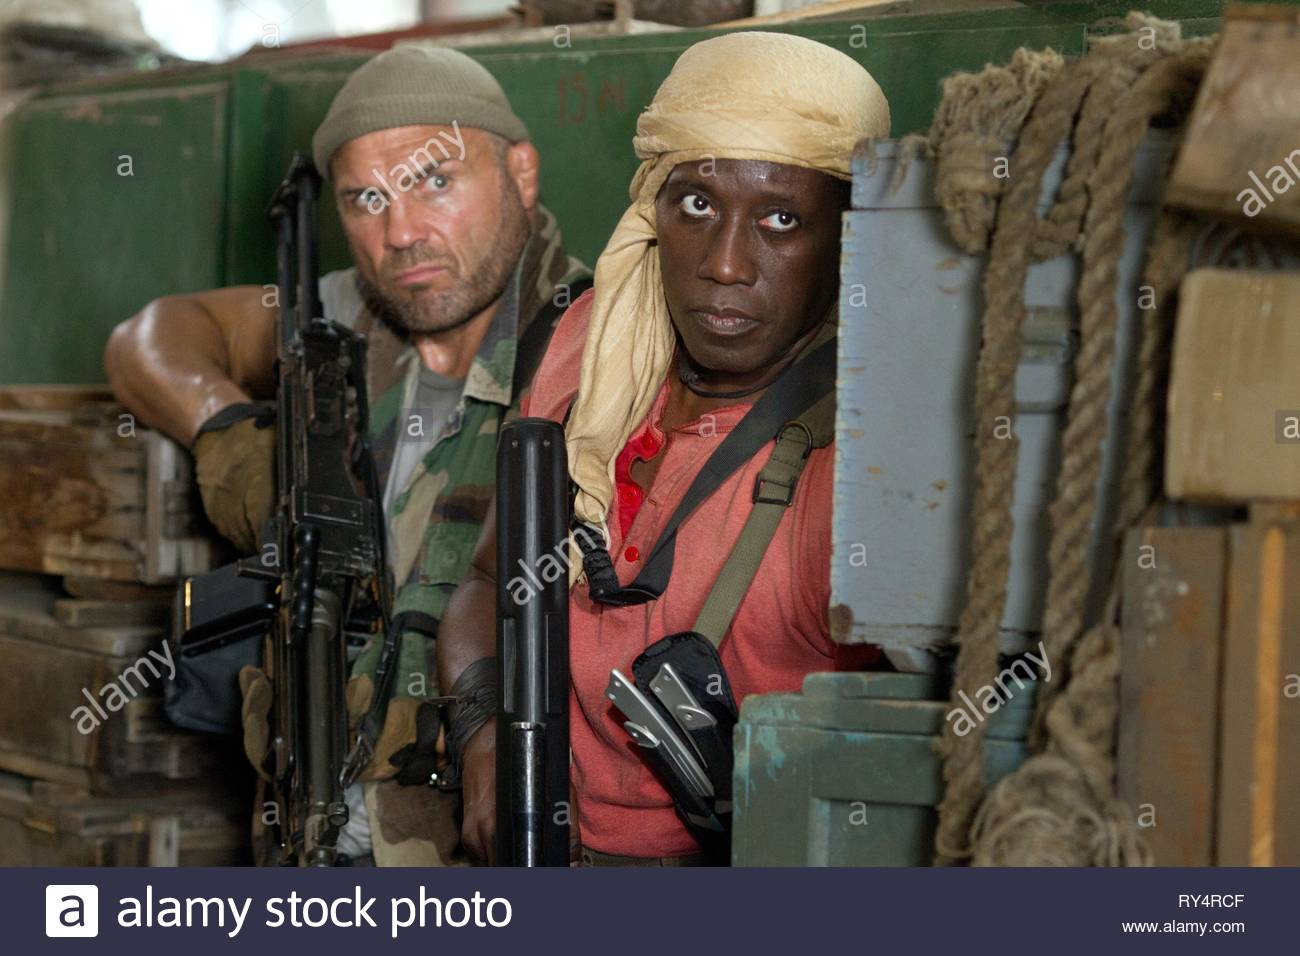 COUTURE,SNIPES, THE EXPENDABLES 3, 2014 - Stock Image